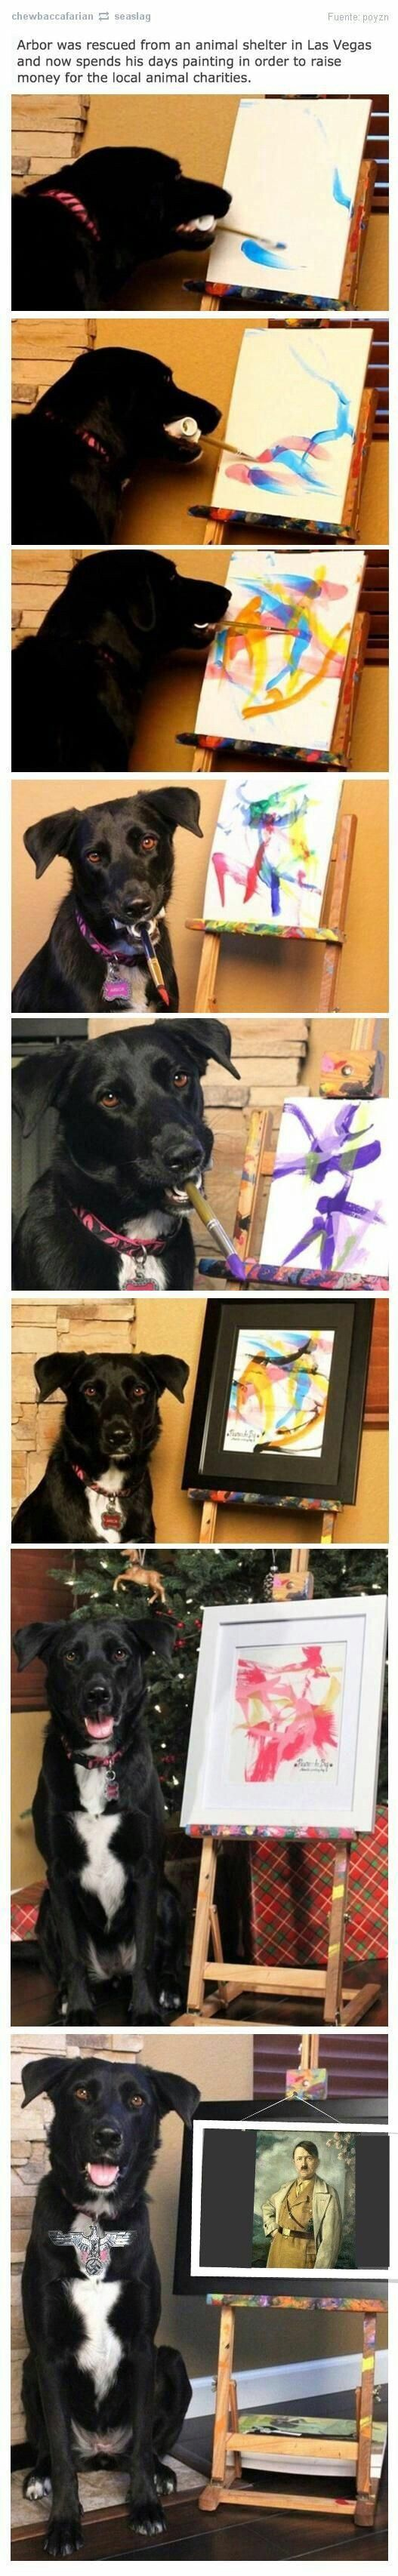 Dog was recused from Animal Shelter in Las Vegas and now spends his days painting in order to raise funds for animal charities.